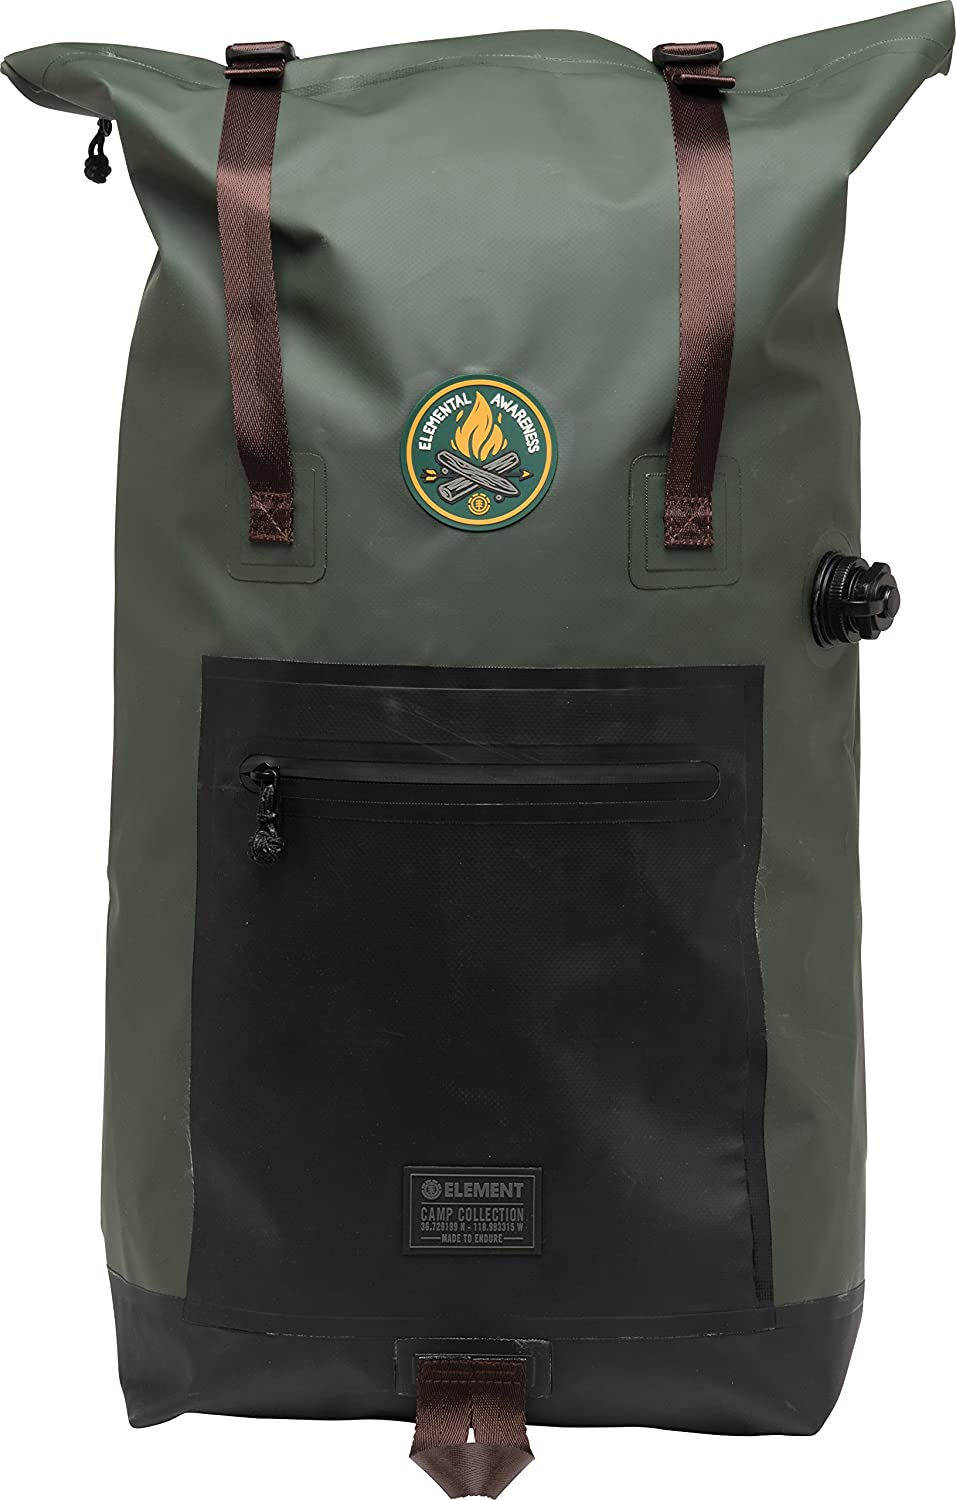 Element Unisex-Adult's Awareness Waterproof Roll Top Backpack, olive drab, One Size